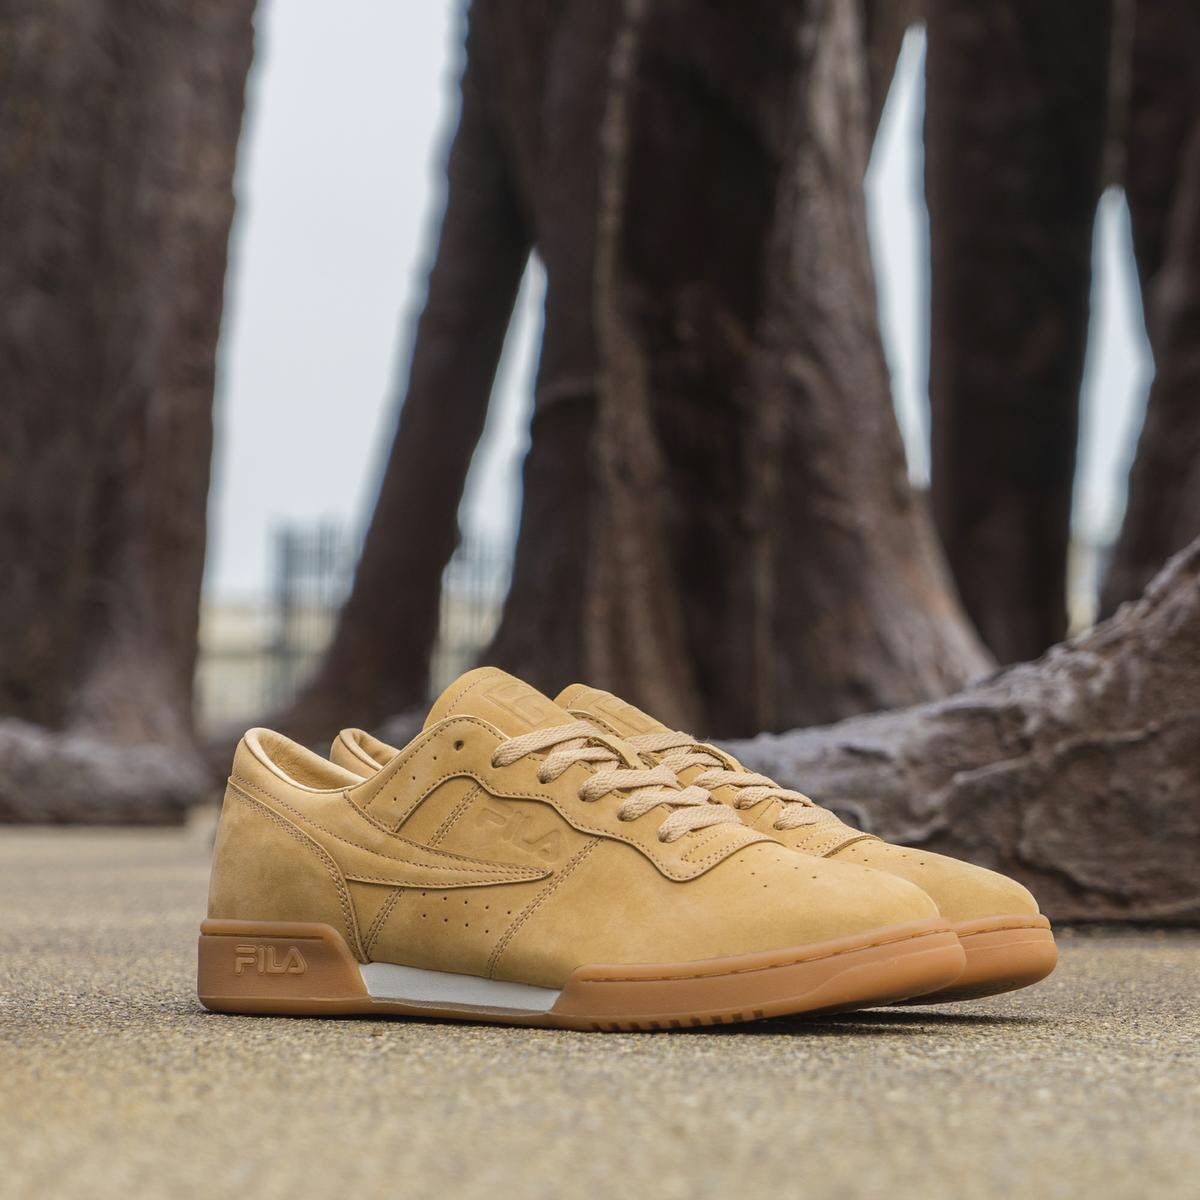 Fila Original Fitness Veg Tan – Full